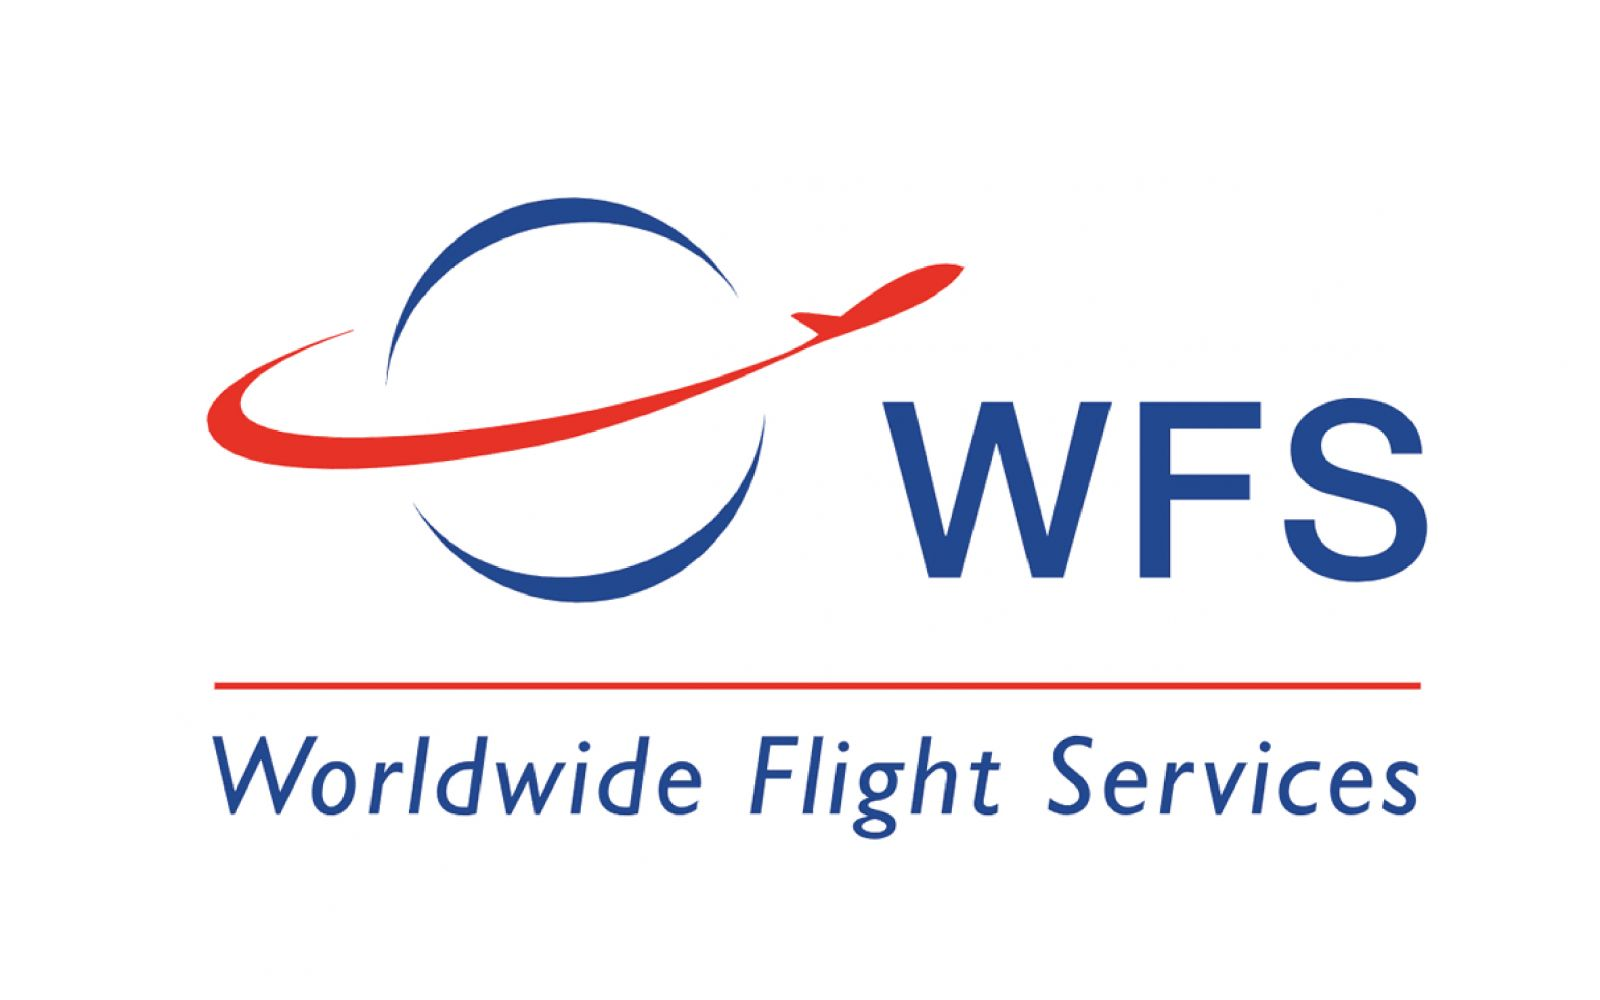 Welcoming Worldwide Flight Services back at London Heathrow Airport